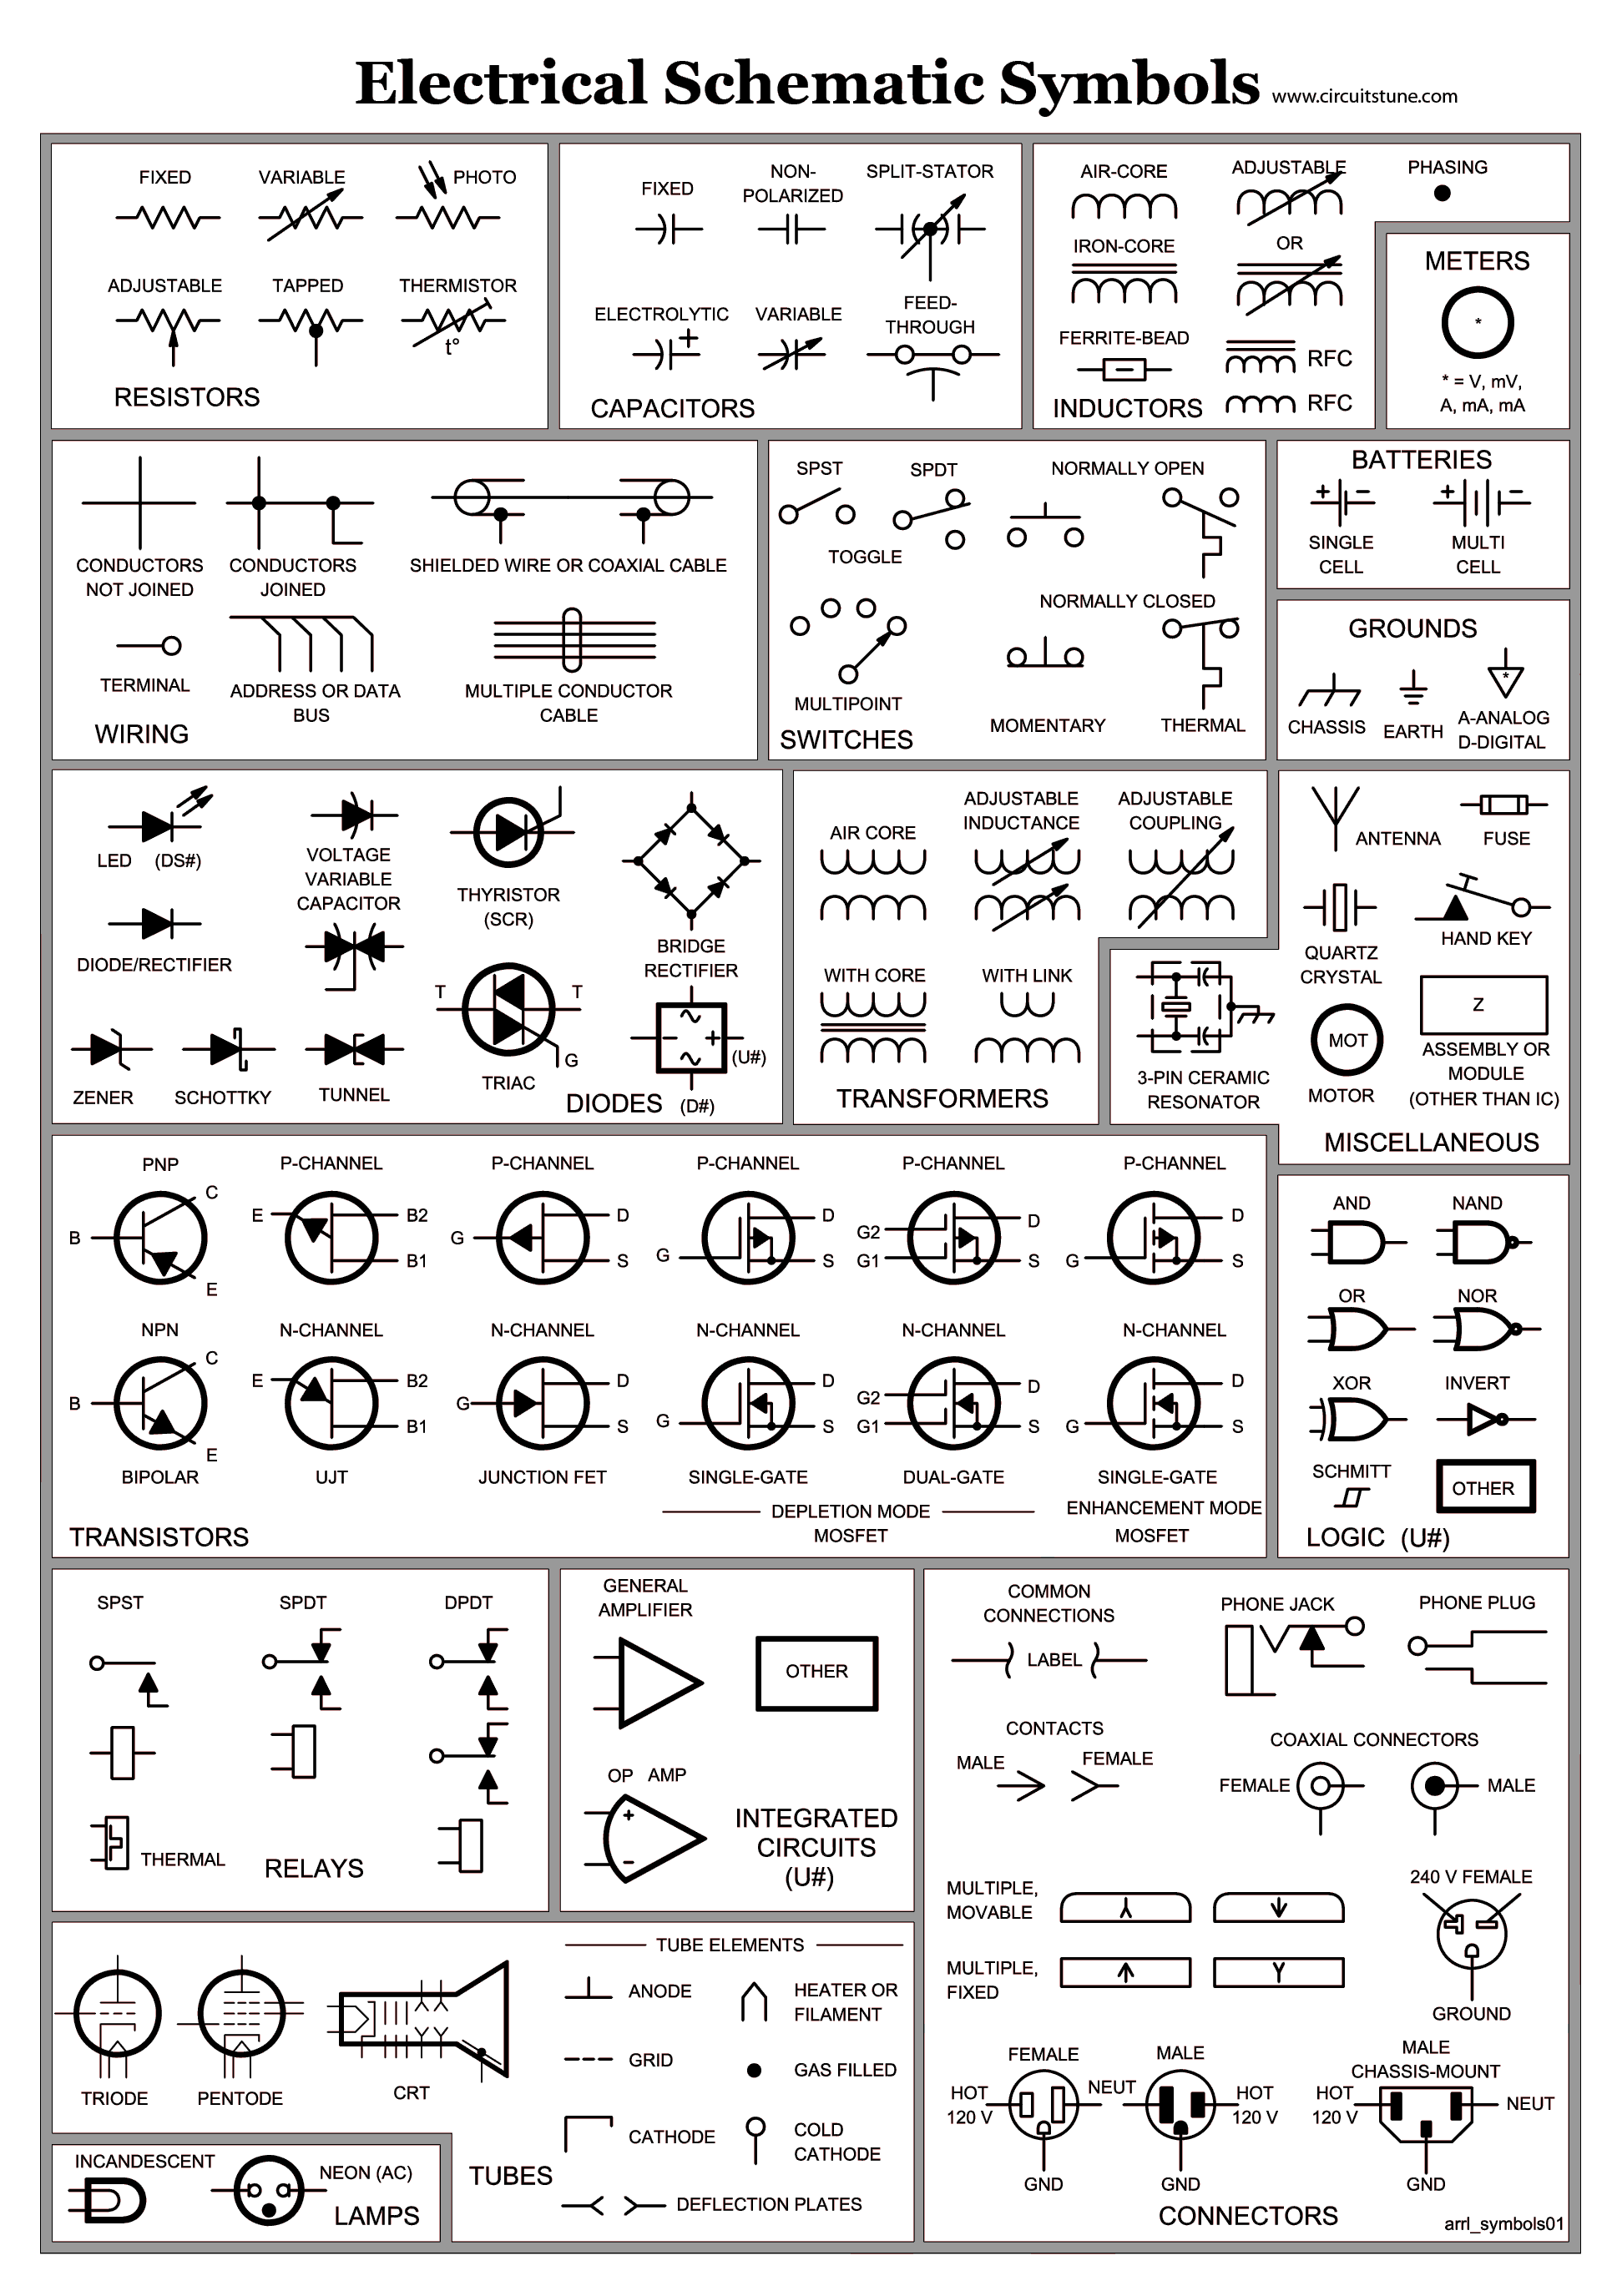 a65d176364692d2ebe913b58a654cfc3 electrical schematic symbols wire diagram symbols automotive wiring diagram symbols at aneh.co